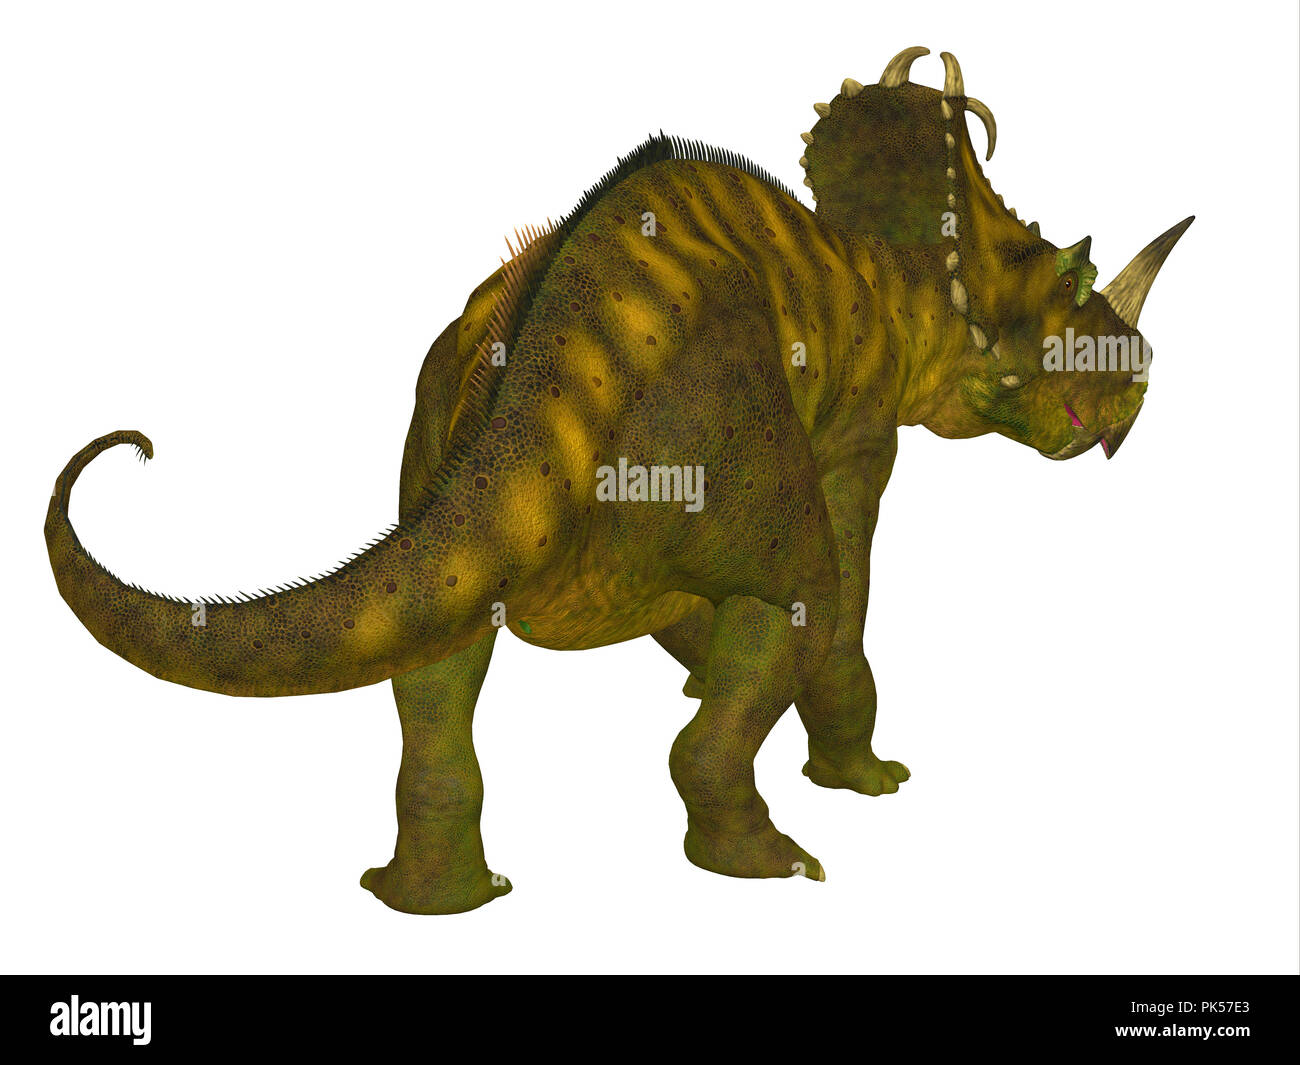 Centrosaurus Dinosaur Tail - Centrosaurus was a beaked ceratopsian herbivorous dinosaur that lived in Canada during the Cretaceous Period. - Stock Image